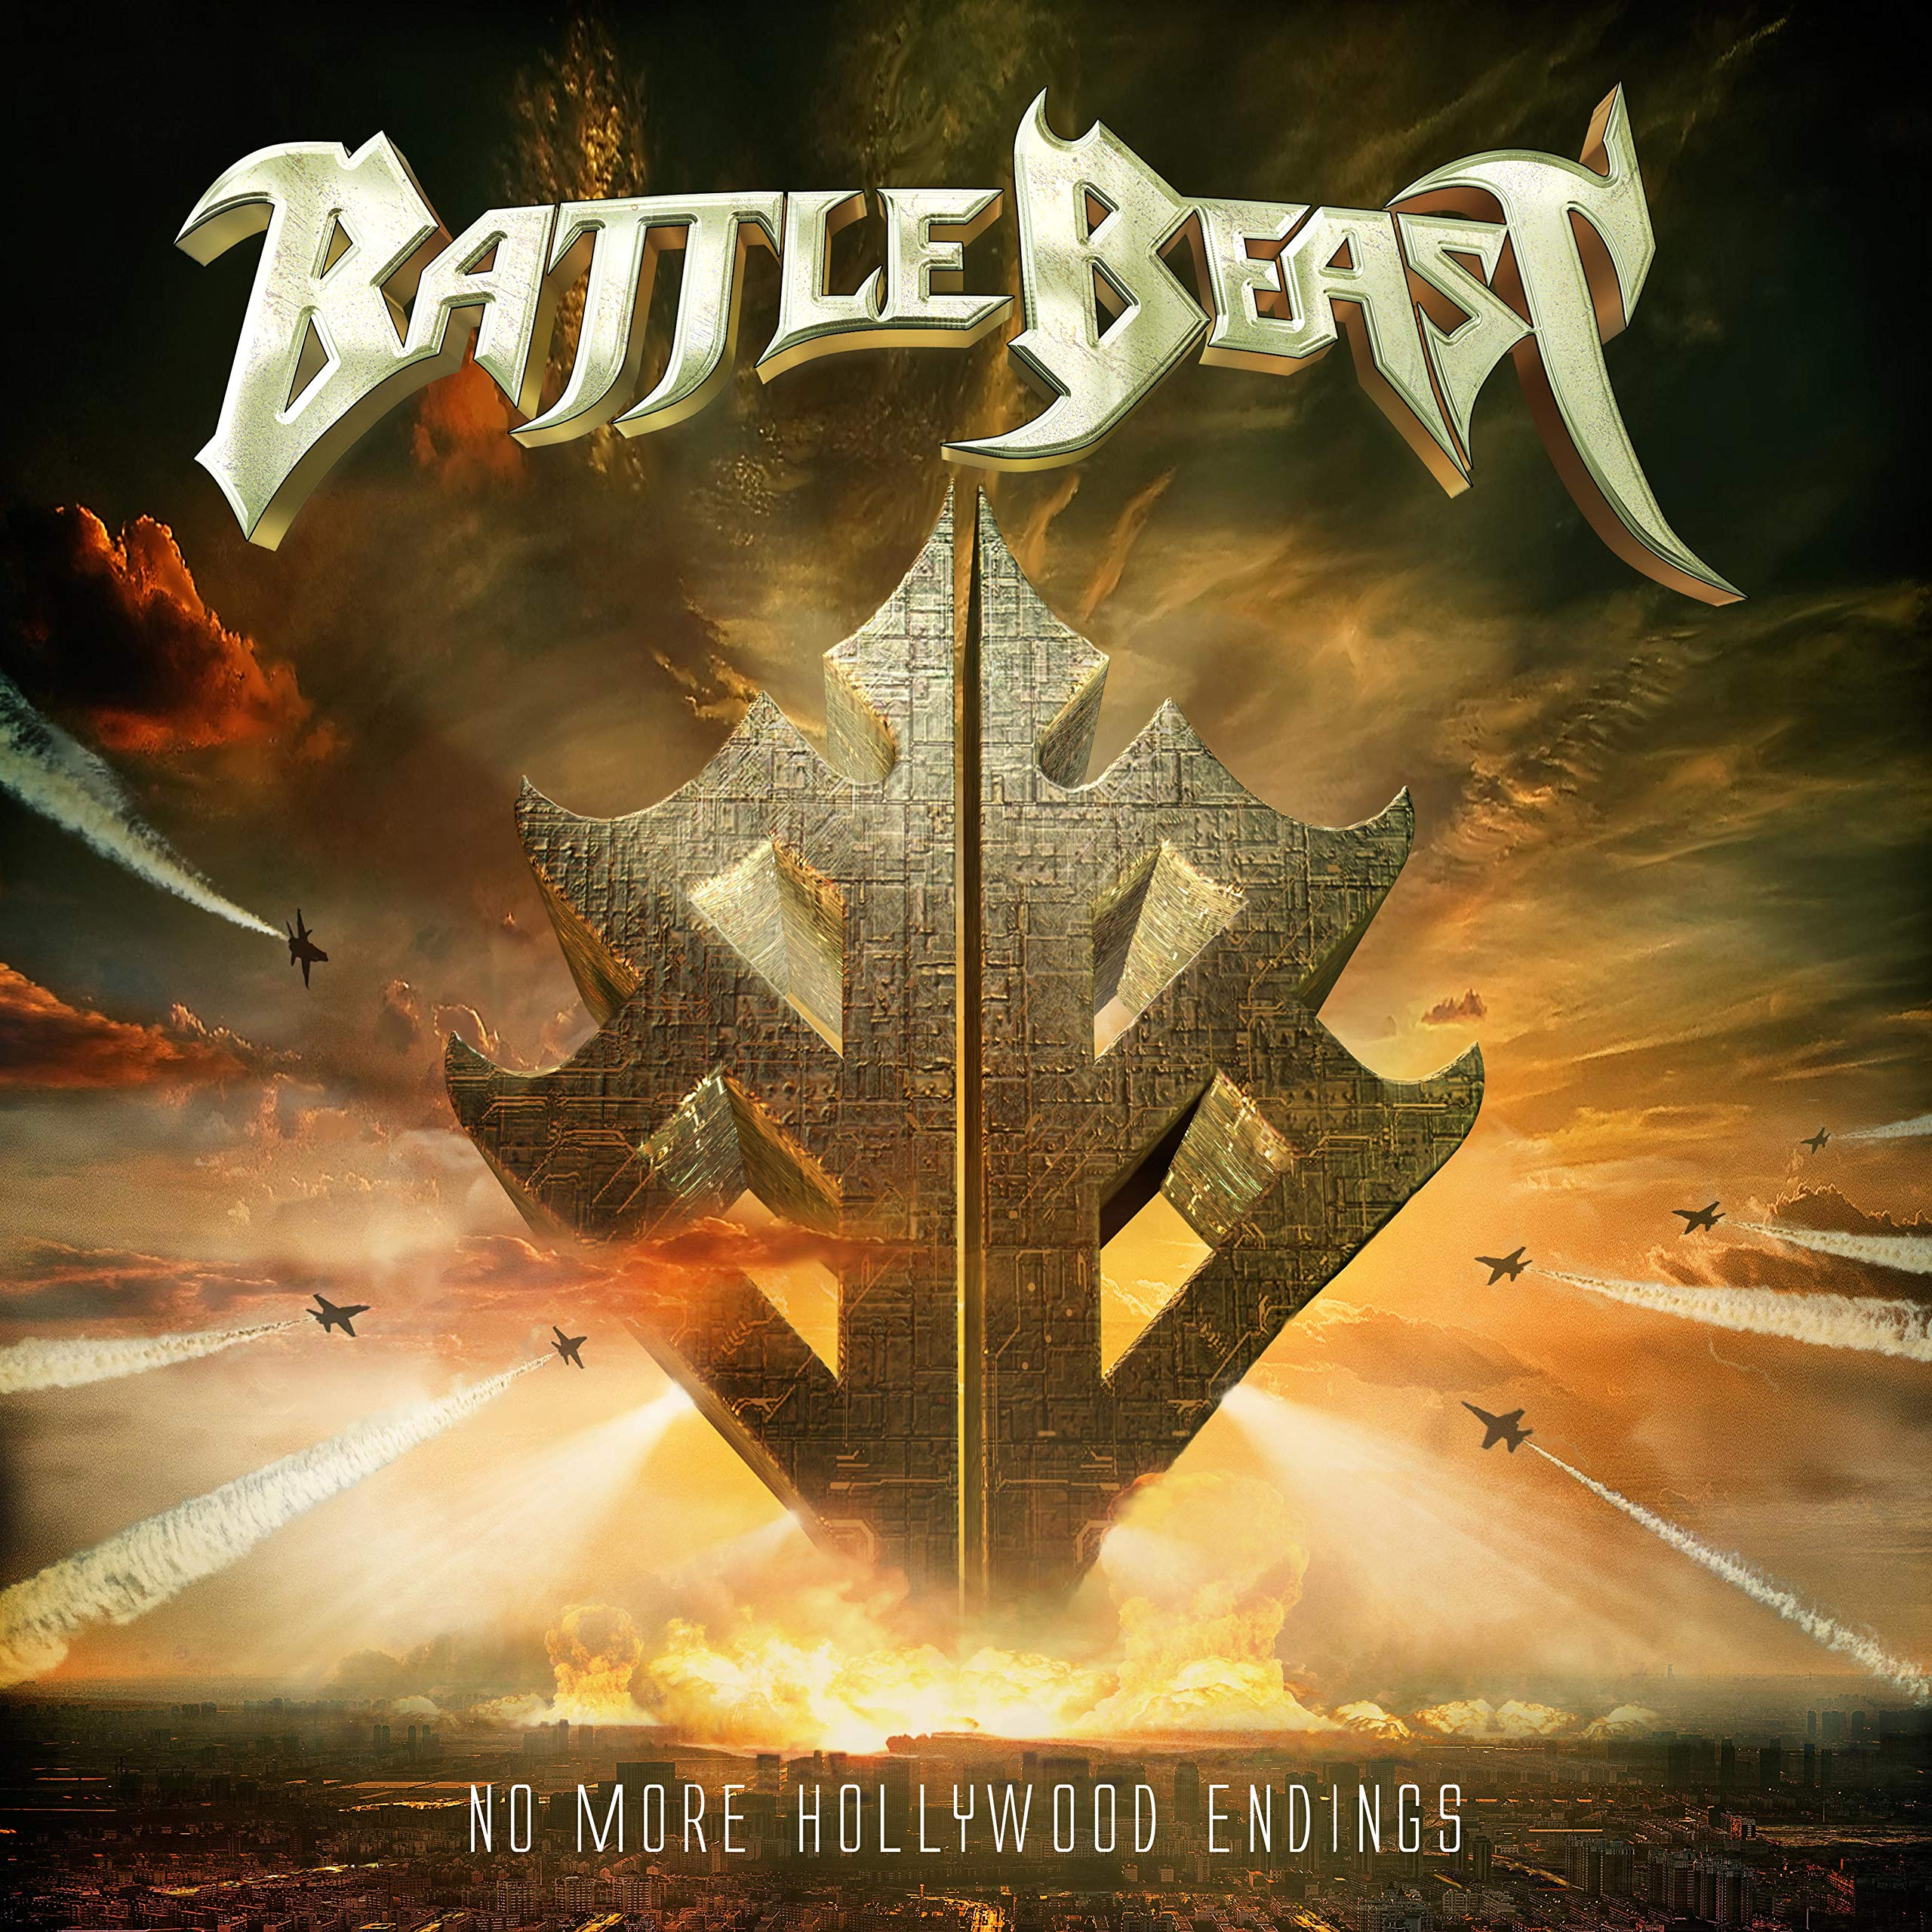 CD : Battle Beast - No More Hollywood Endings (CD)